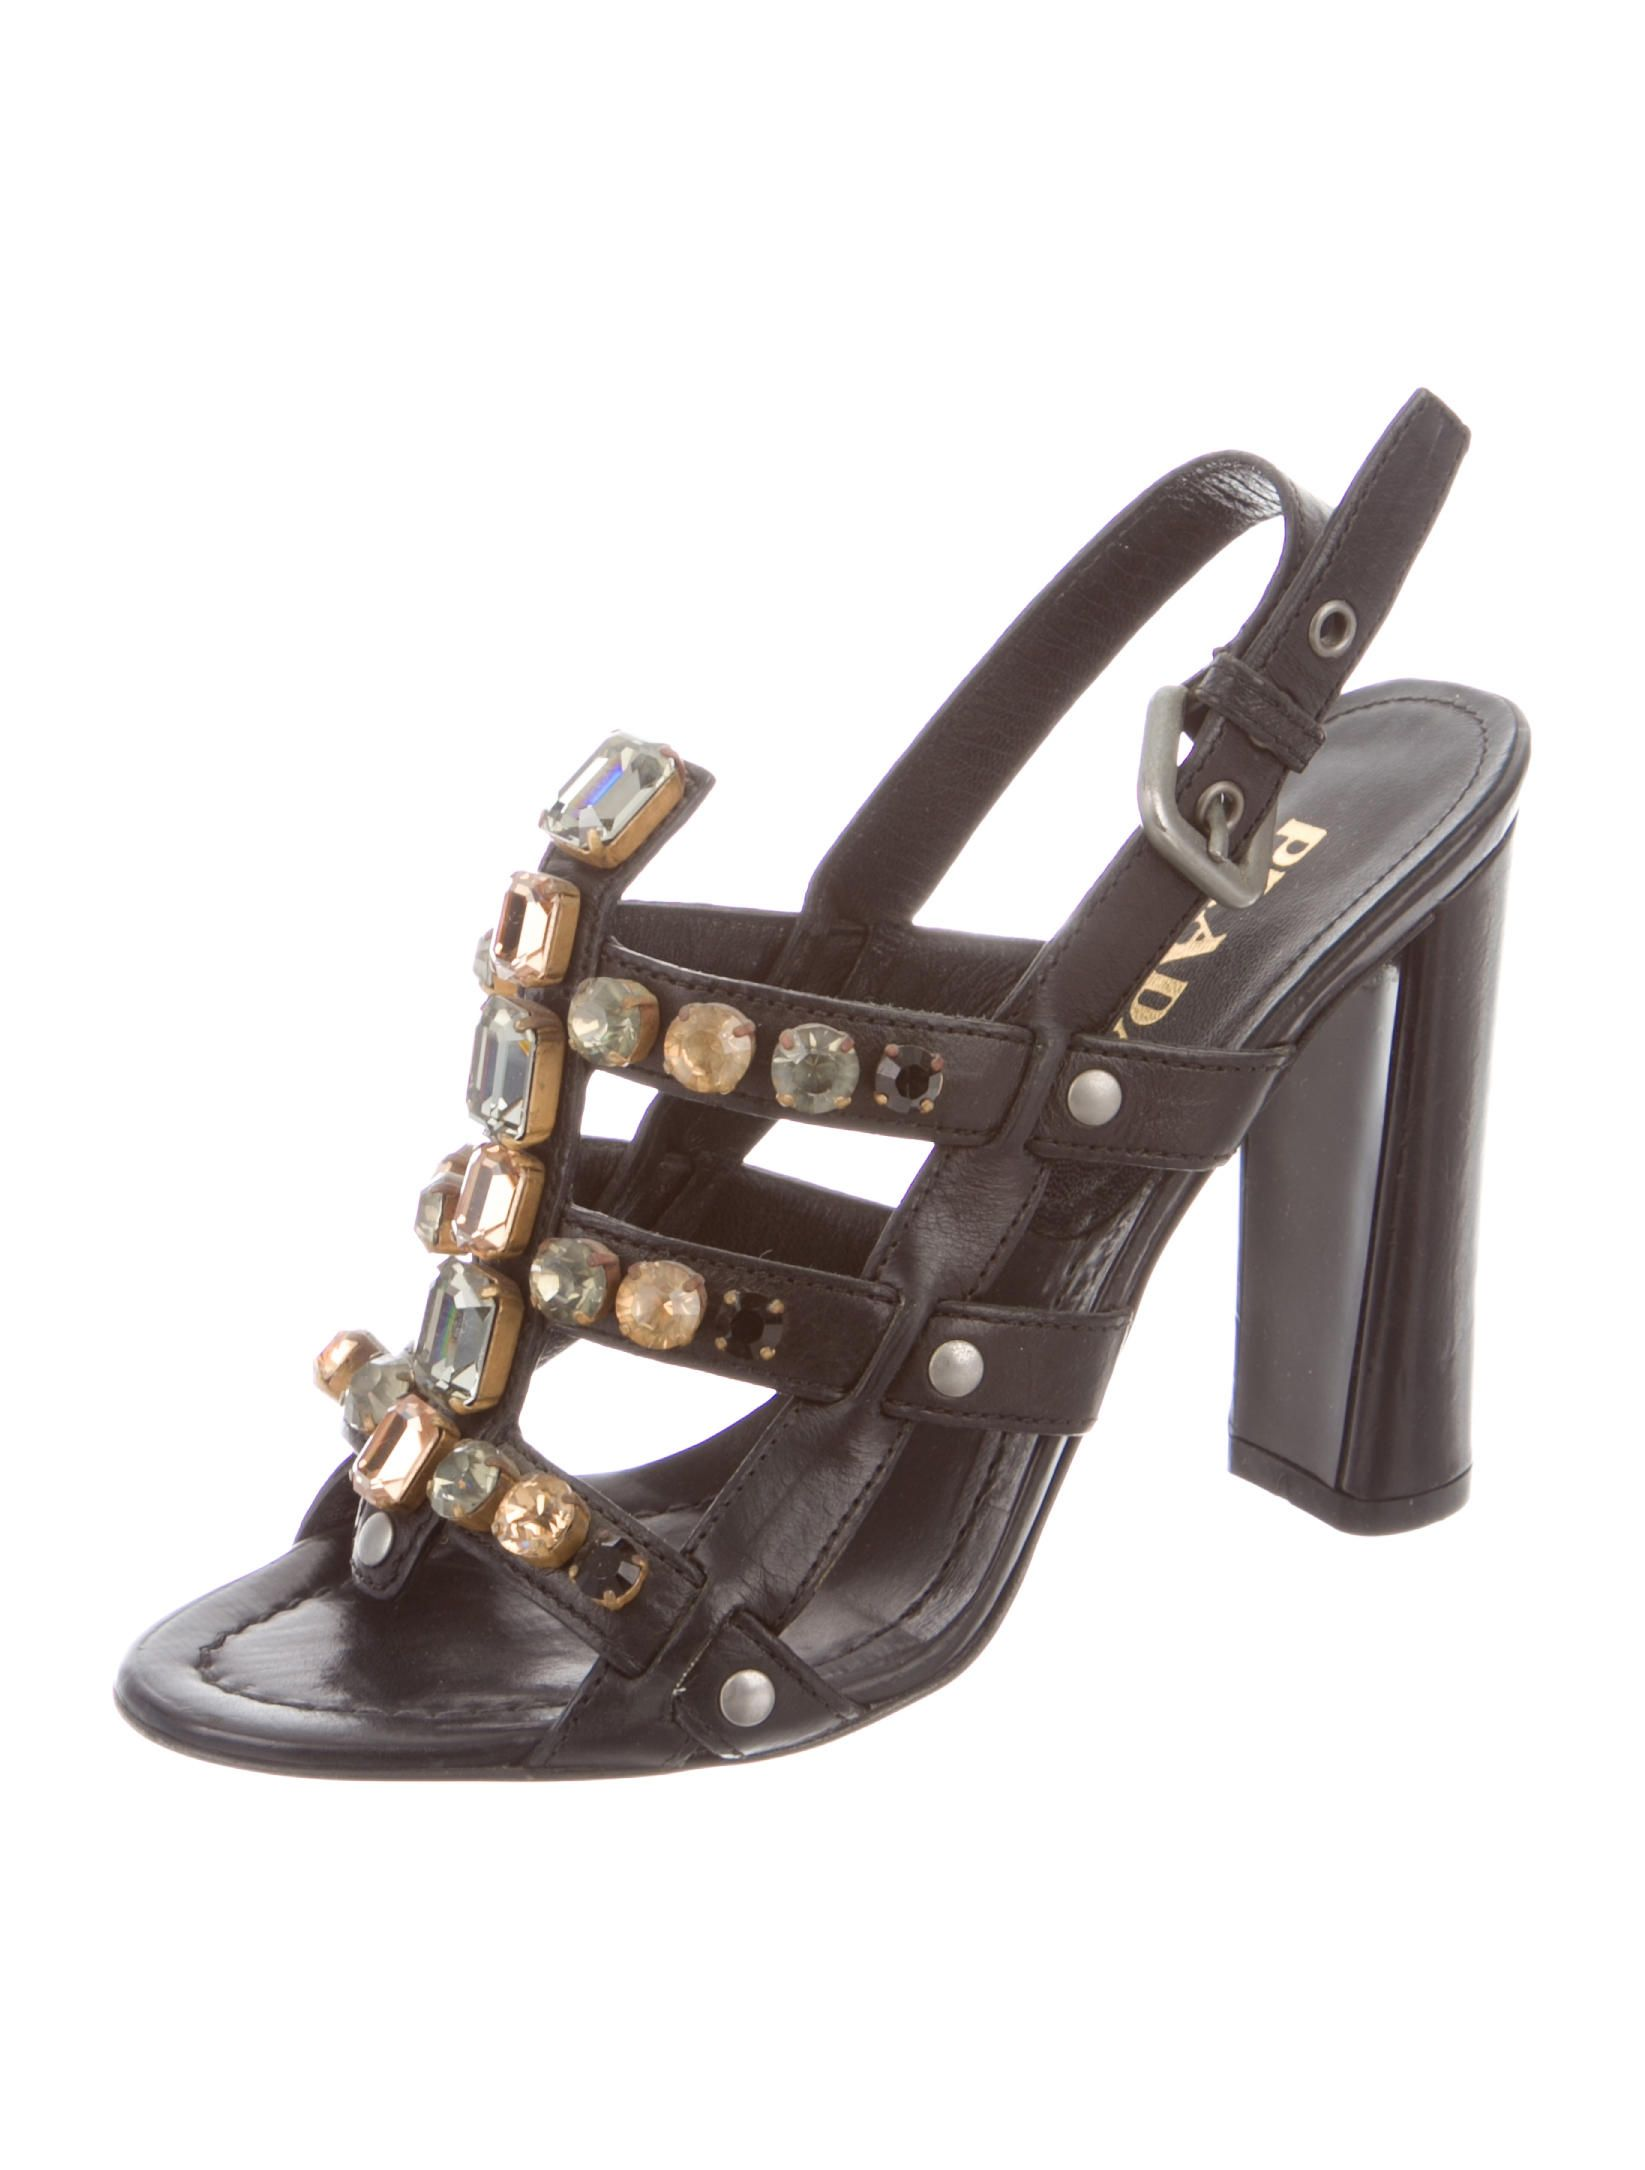 254d3eb7f7db6 Prada Jewel Embellished Cage Sandals - Shoes - PRA95155